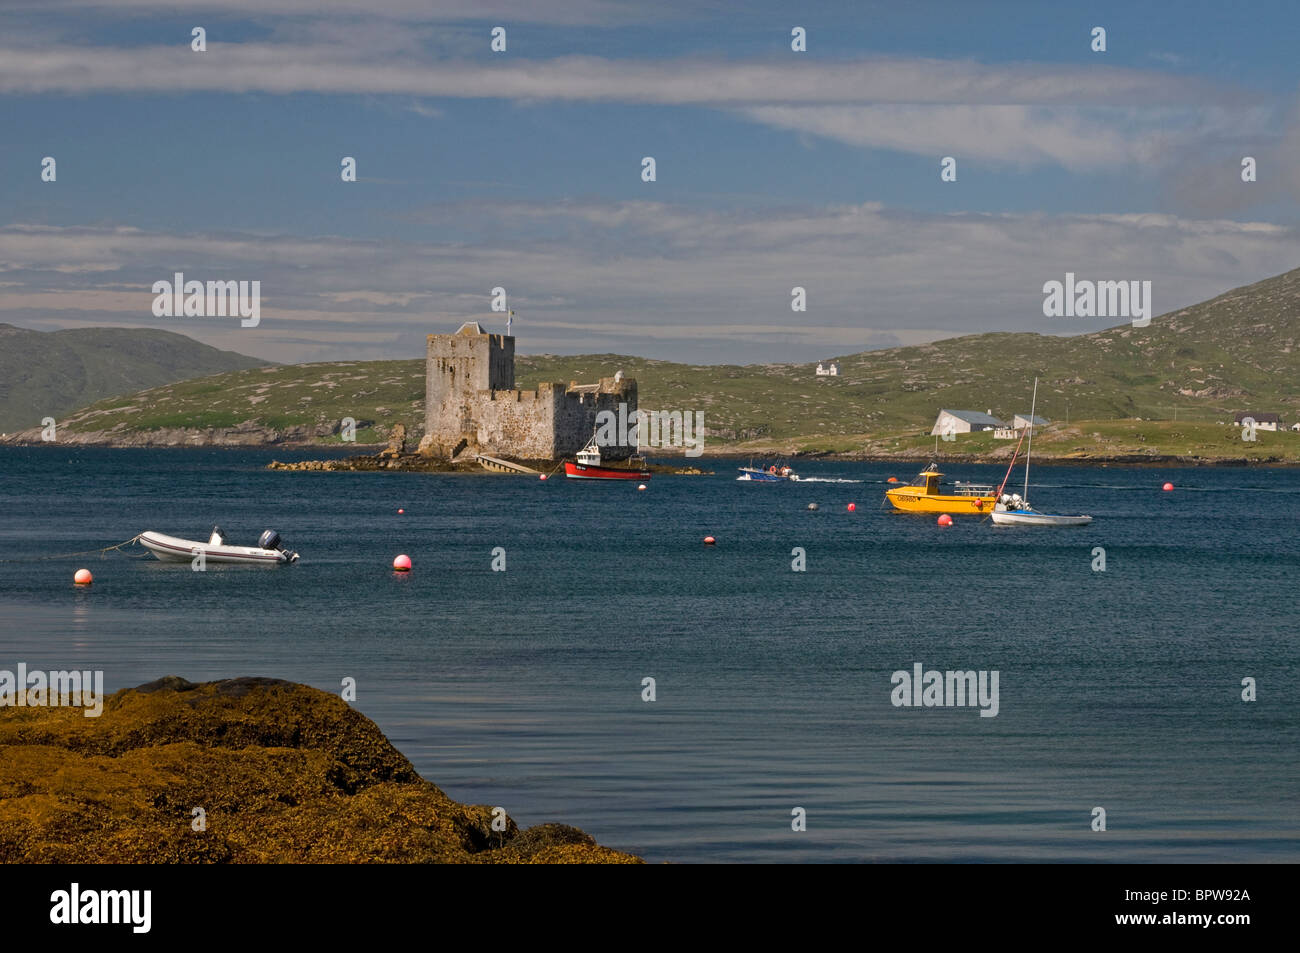 Kisimul Castle sits in Castlebay on the Island of Barra, Outer Hebrides Western Isles. Scotland.   SCO 6530 - Stock Image